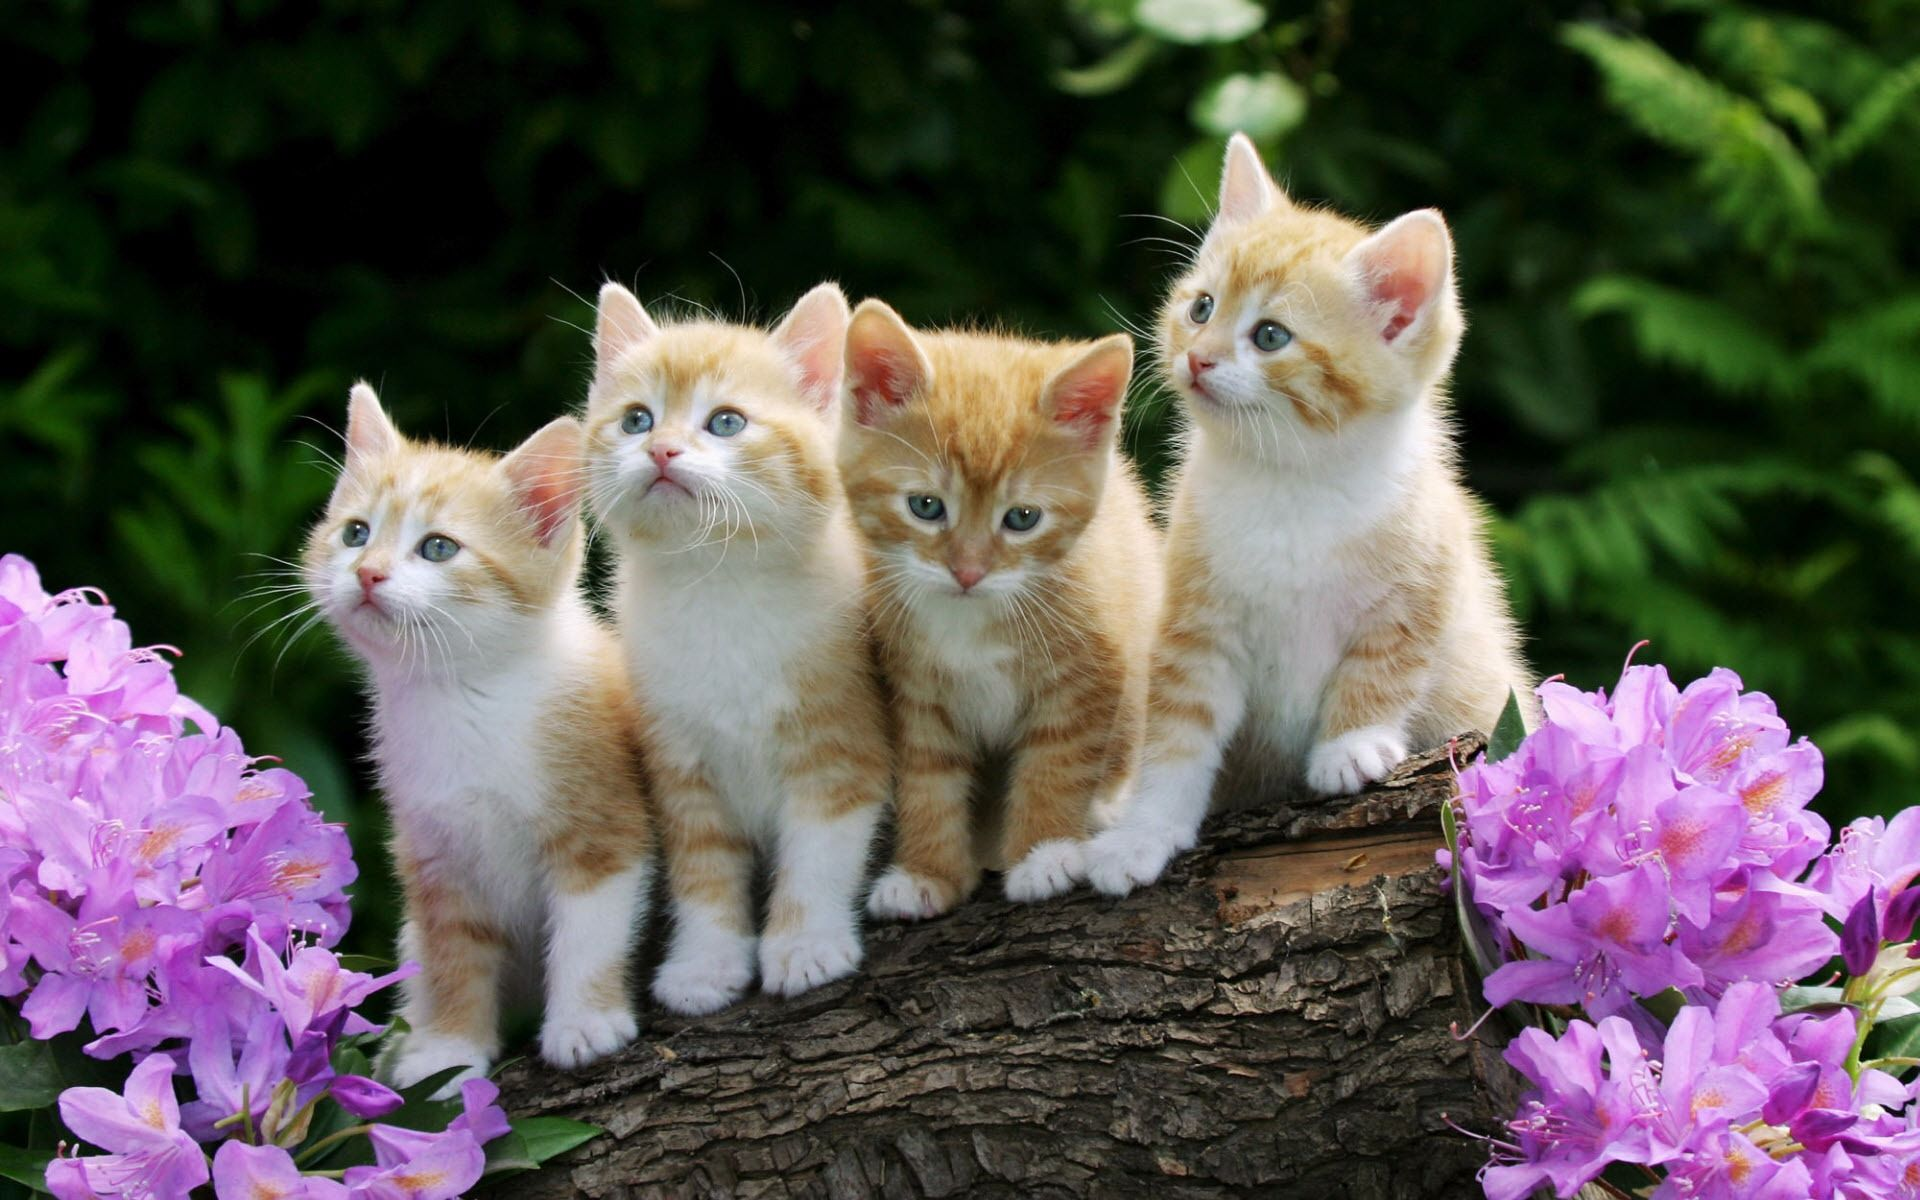 Download Wallpaper High Quality Cat - 7e6305d019e33fb39459aaf3c1c91a5d  You Should Have_988799.jpg